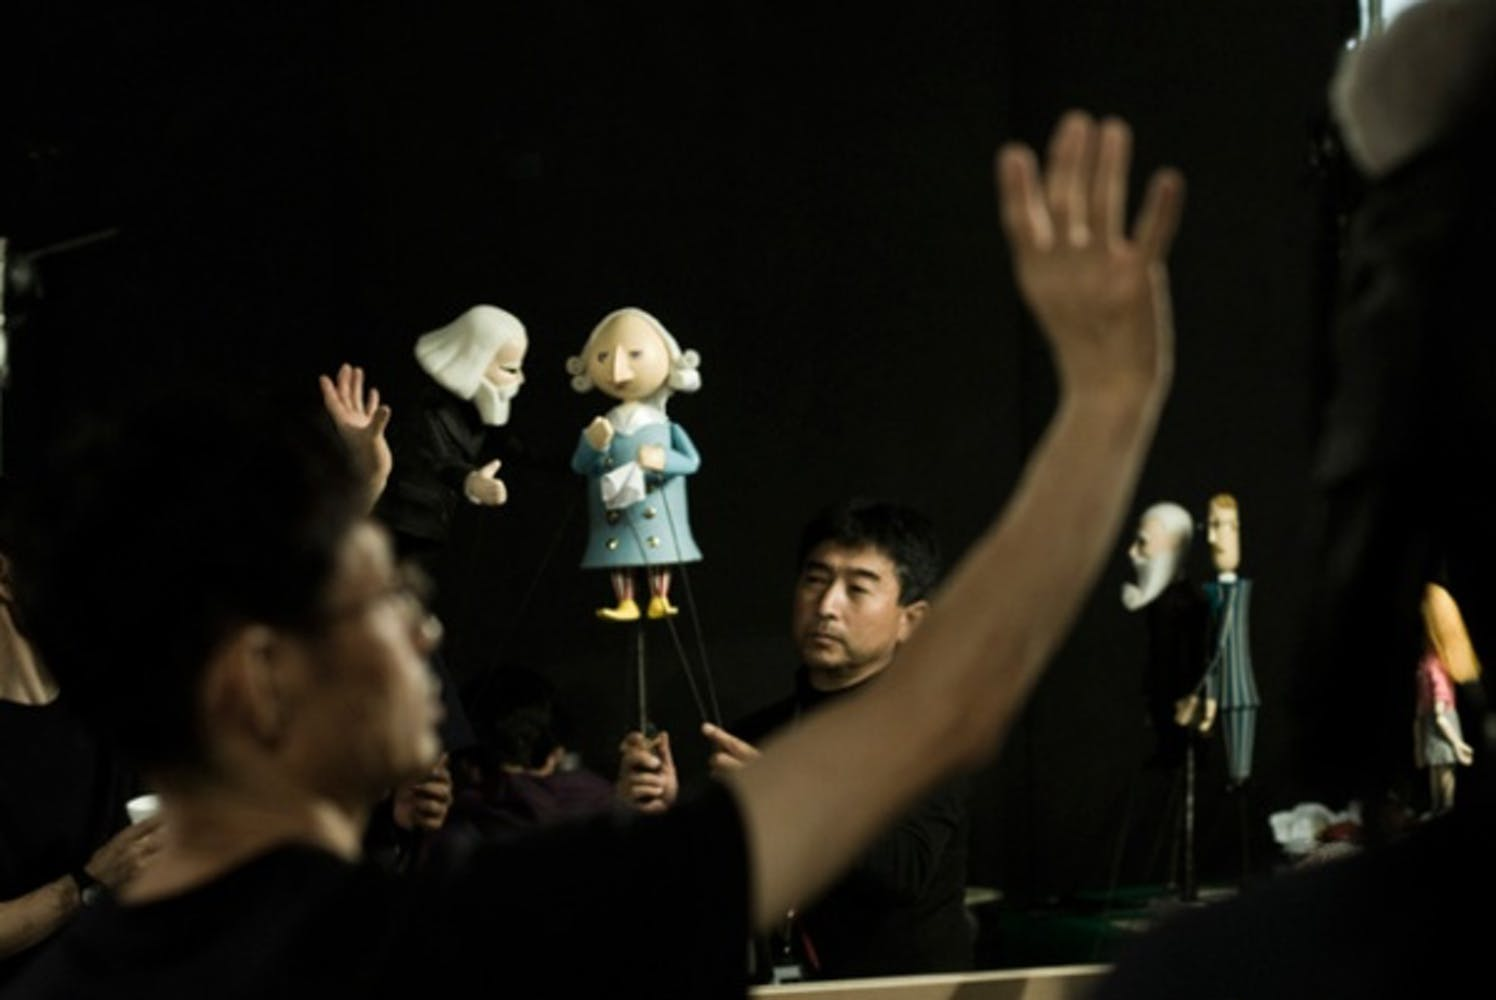 Pedro Reyes, Baby Marx pilot in production, 2009